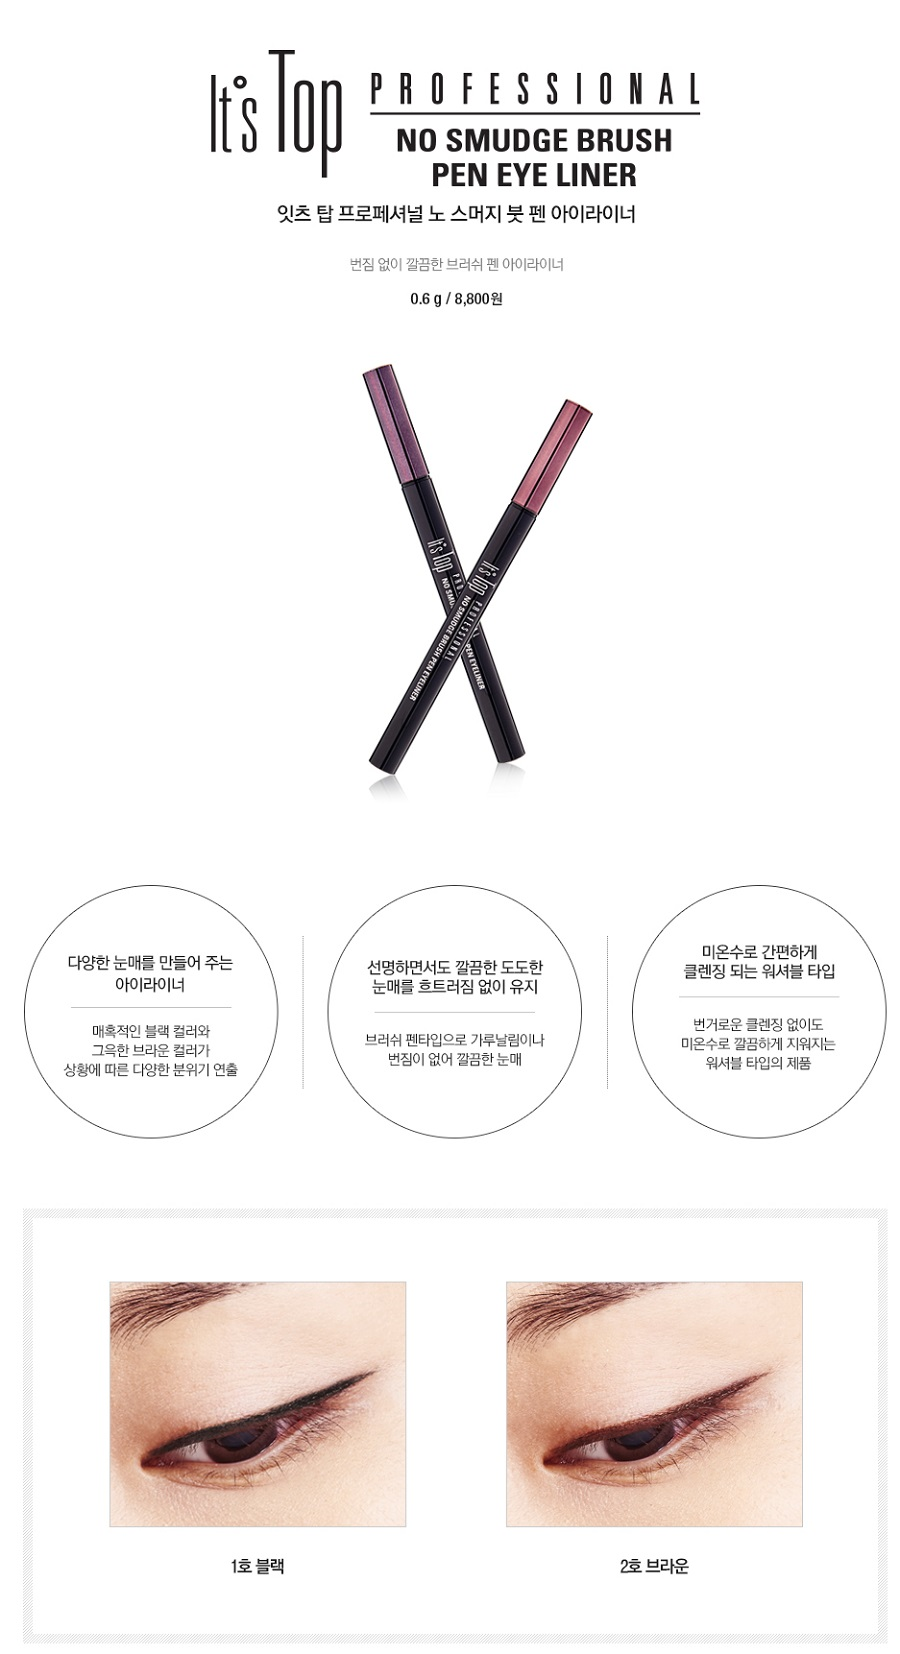 Its Skin It's Top Professional No Smudge Brush Pen Eyeliner (2 Colors)